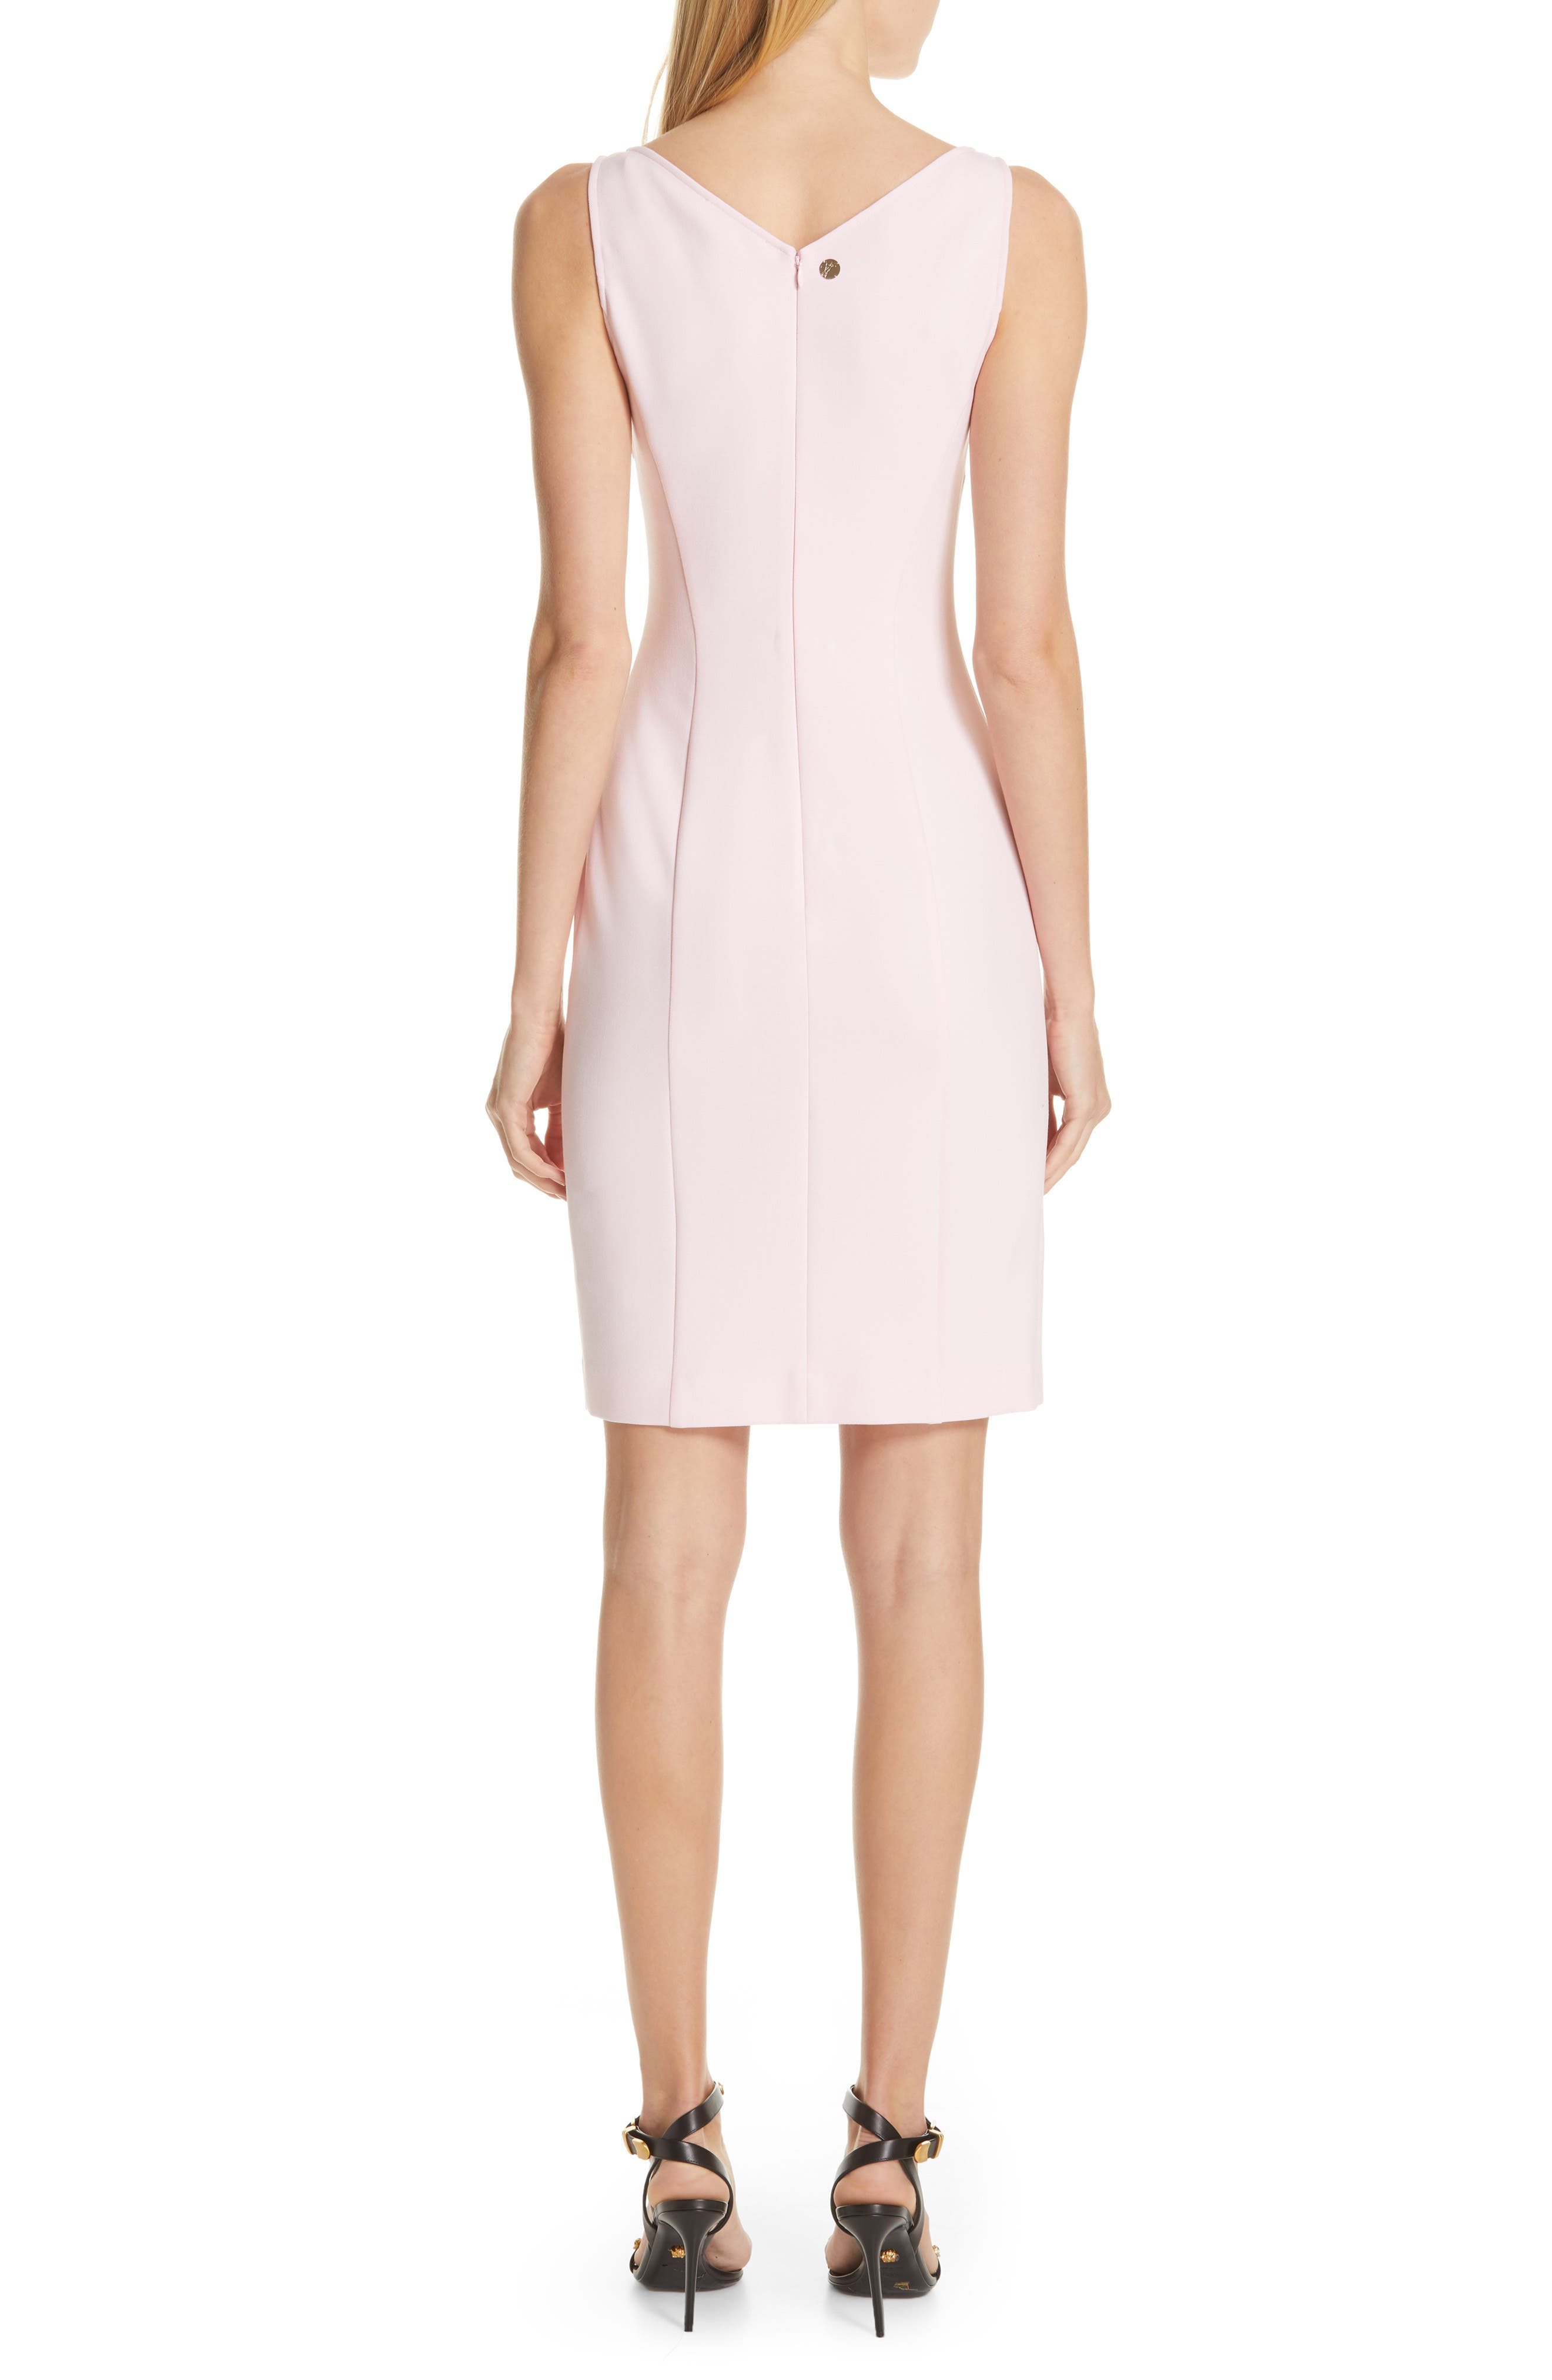 VERSACE COLLECTION, Stretch Cady Sheath Dress, Alternate thumbnail 2, color, PASTEL ROSE